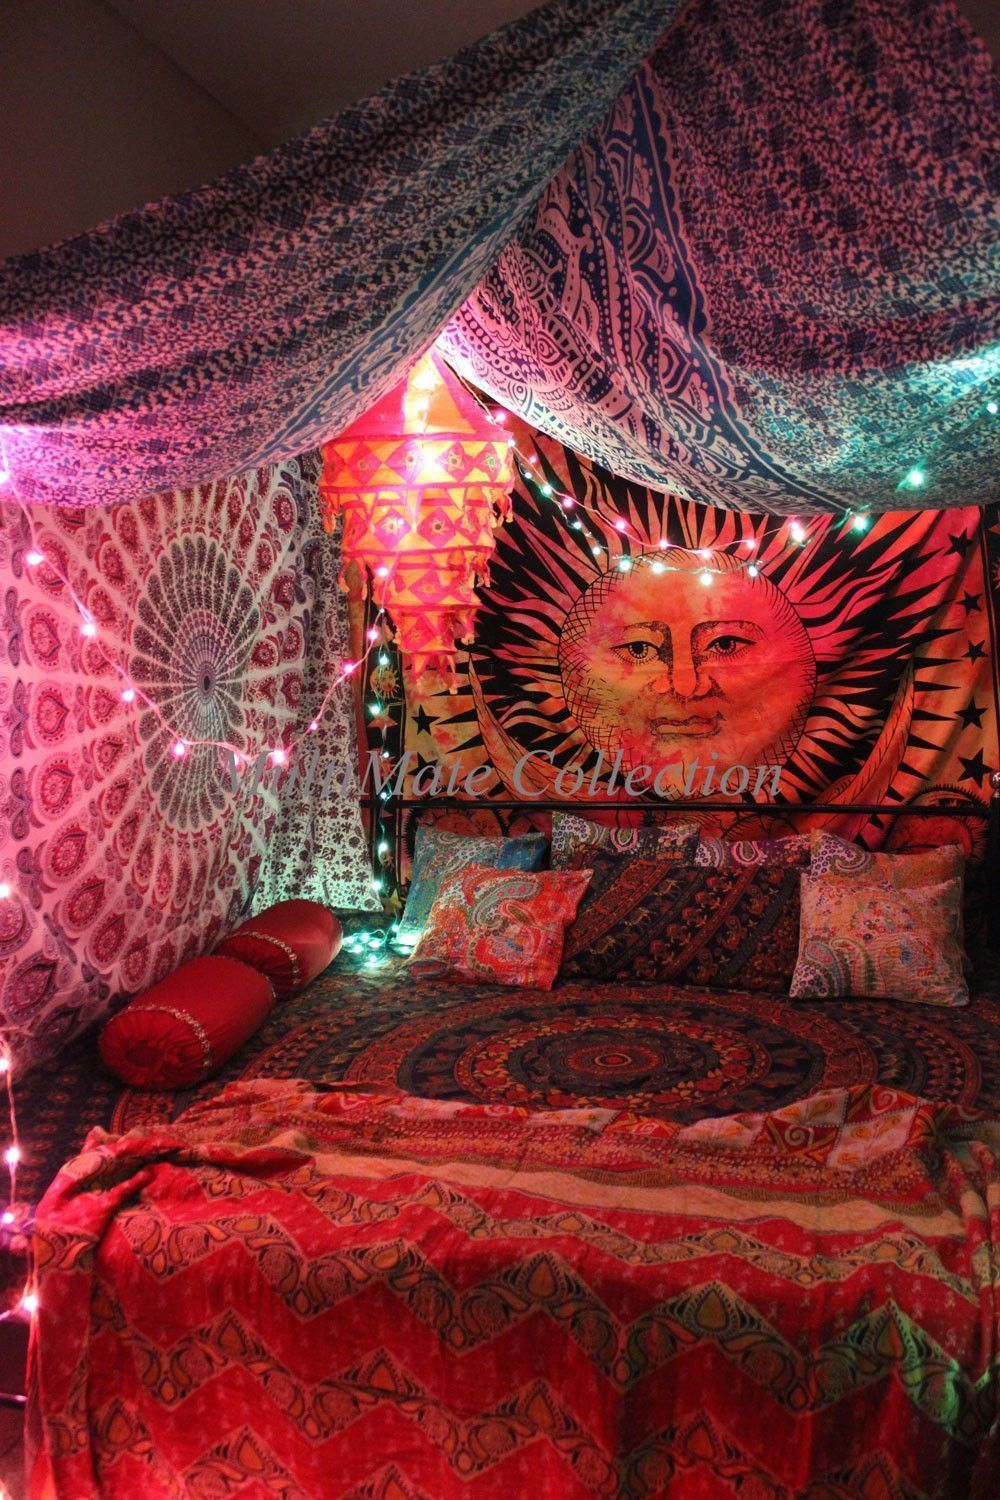 Bohemian Bedroom Decor Ideas - Locate the most effective Bohemian Bed room Designs. Learn ways